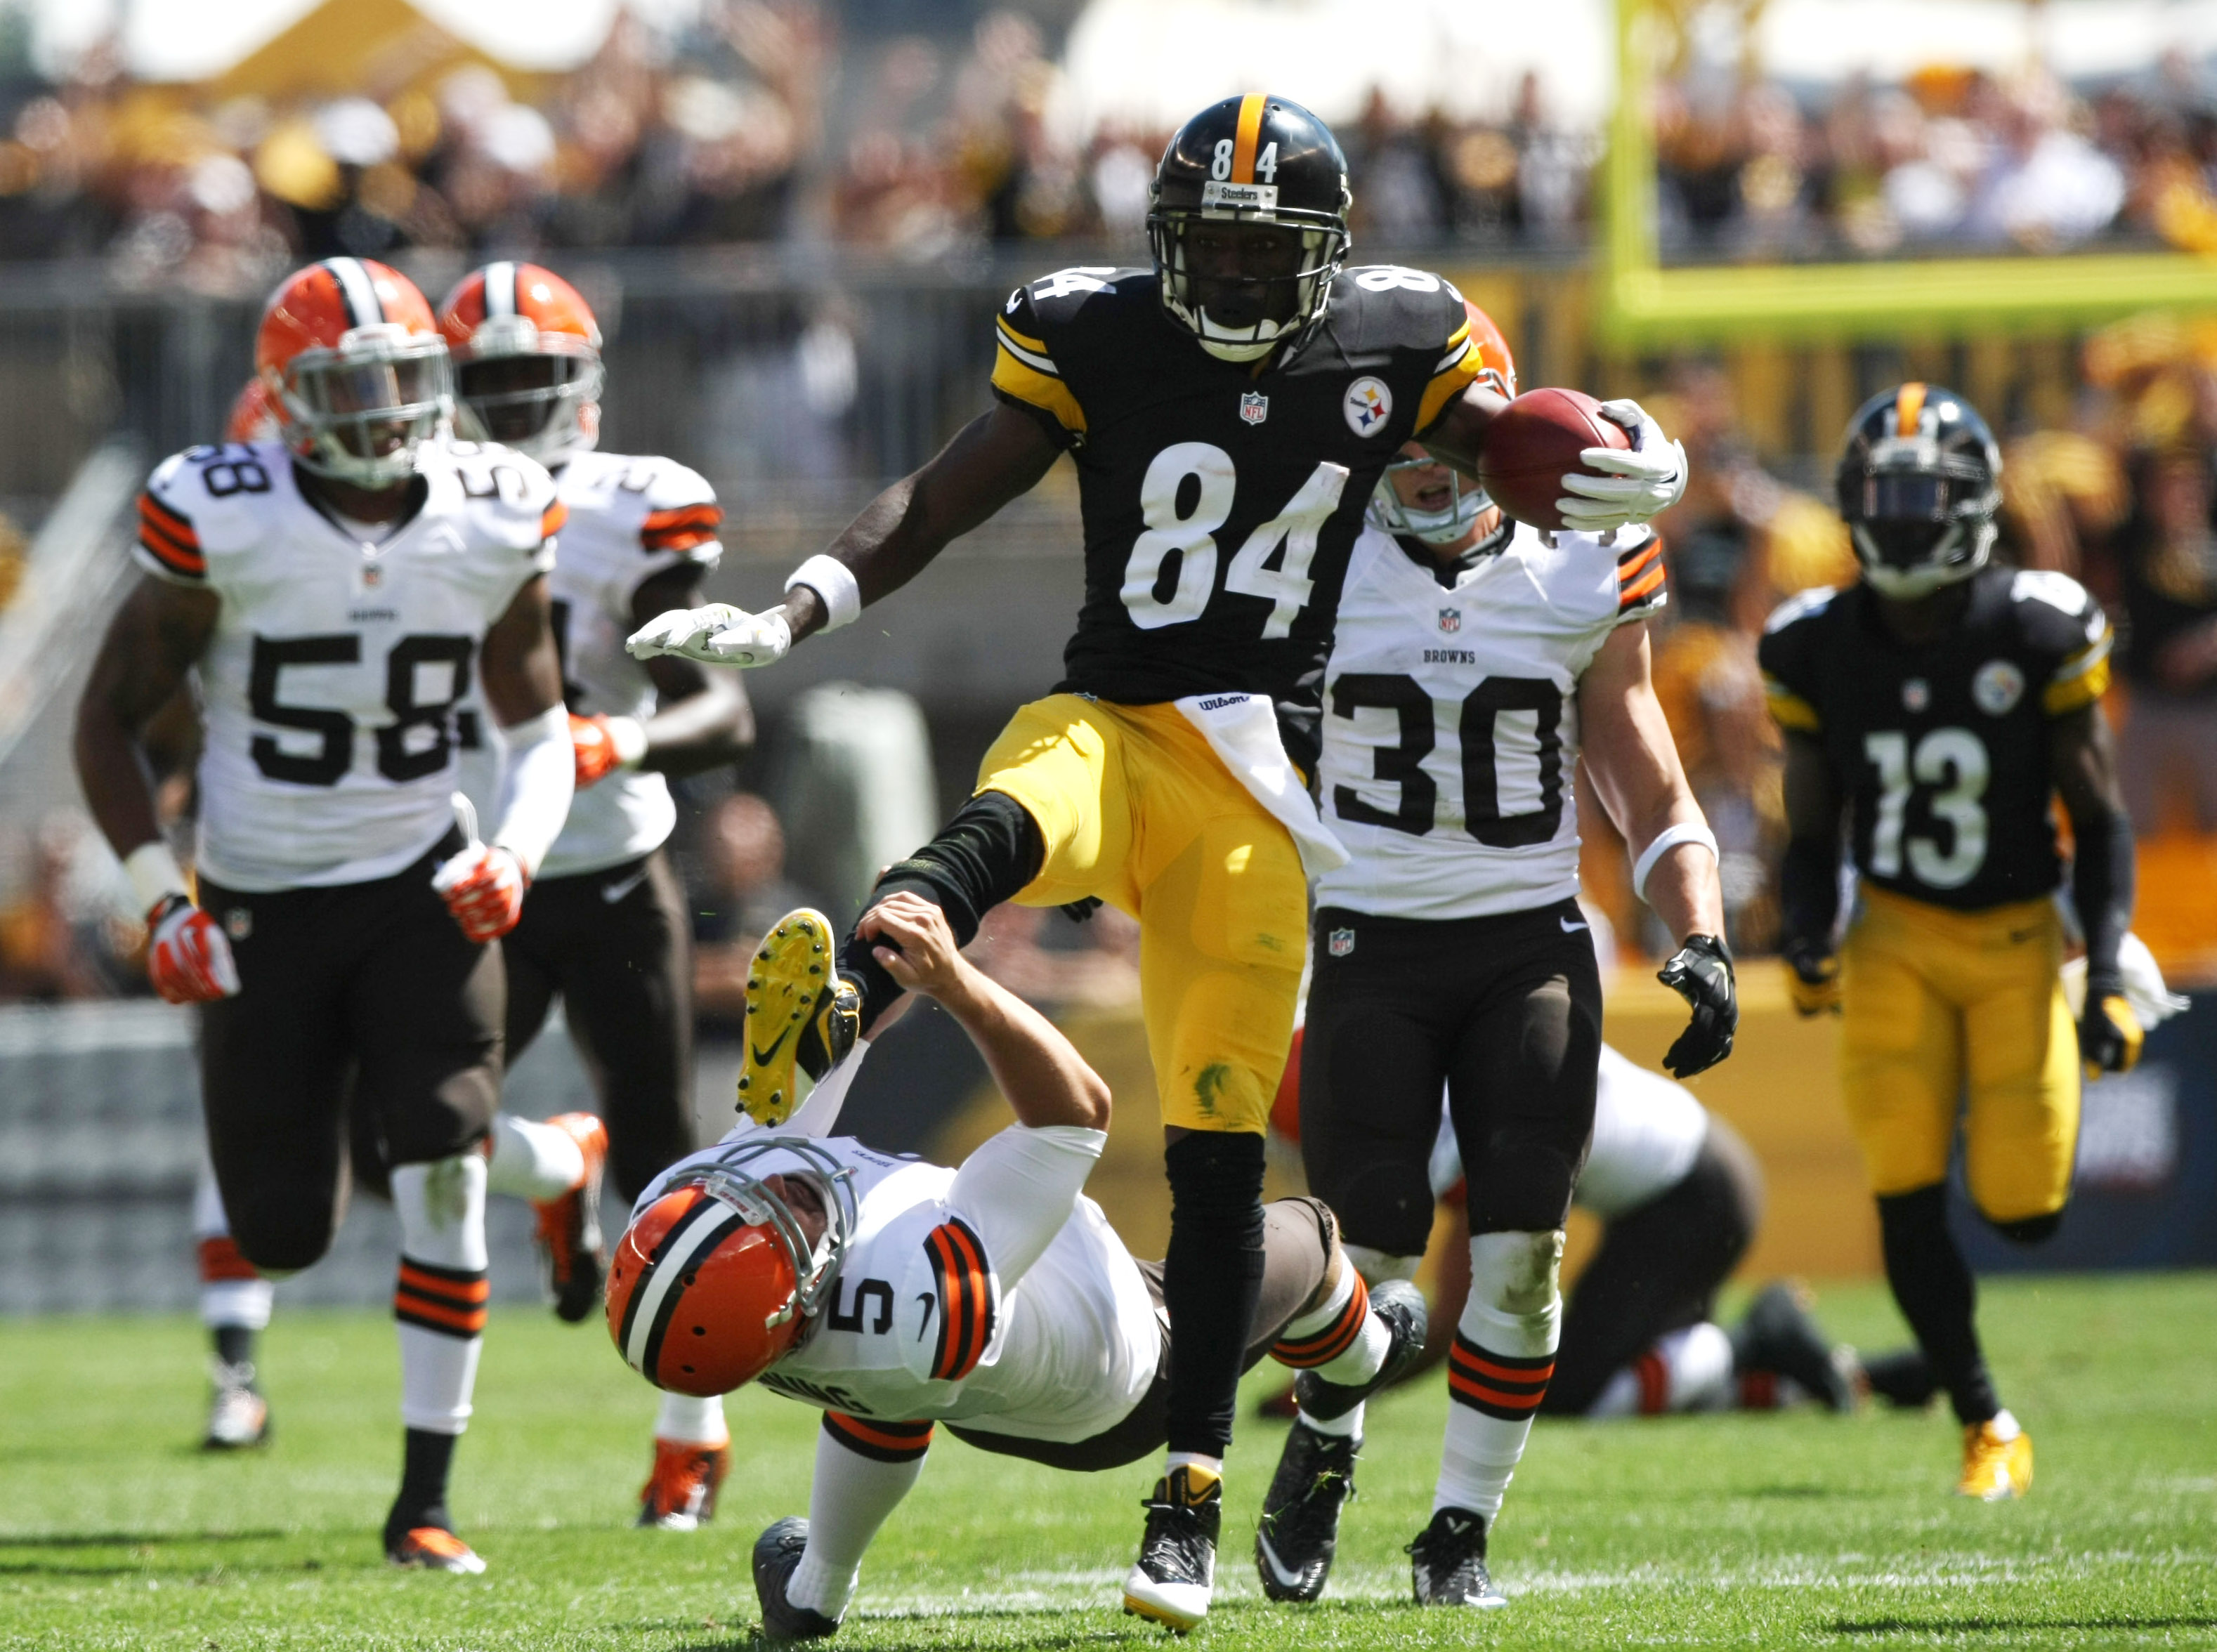 Steelers all-pro wideout Antonio Brown is at the top of nearly every fantasy football draft board for 2016.